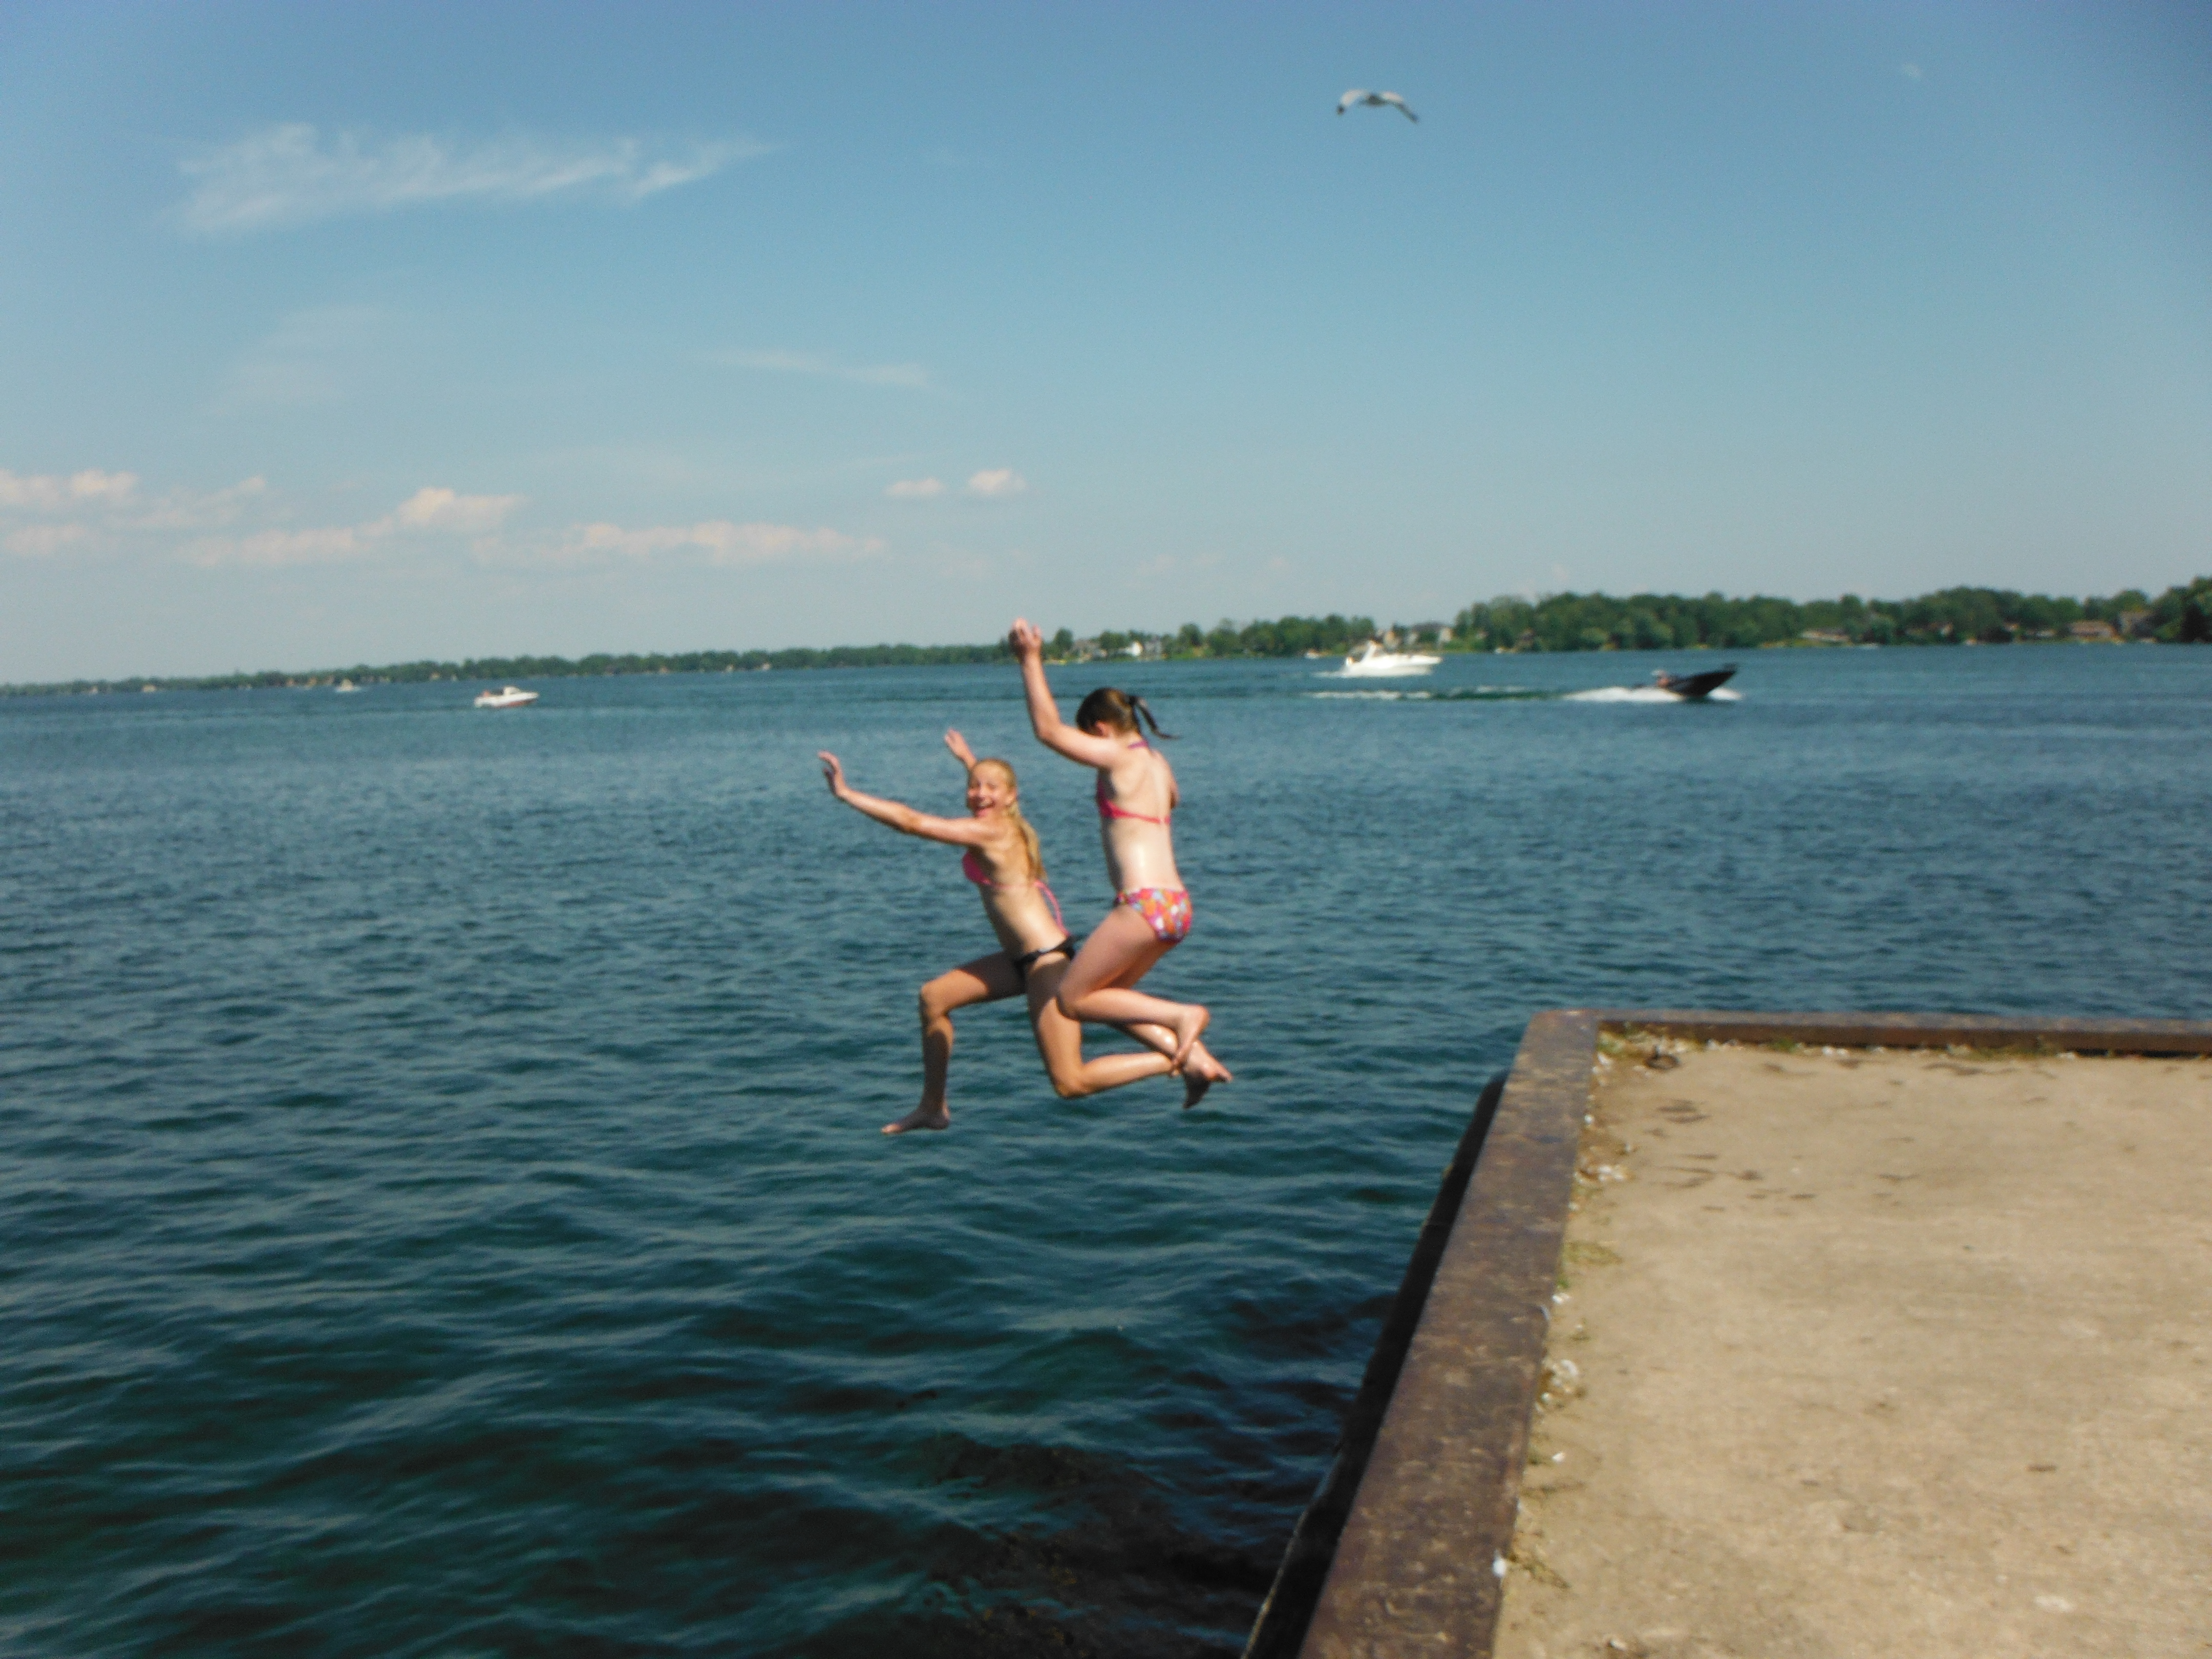 Paris and Kendall jumping off the dock into Lake Couchiching in Orillia Ontario